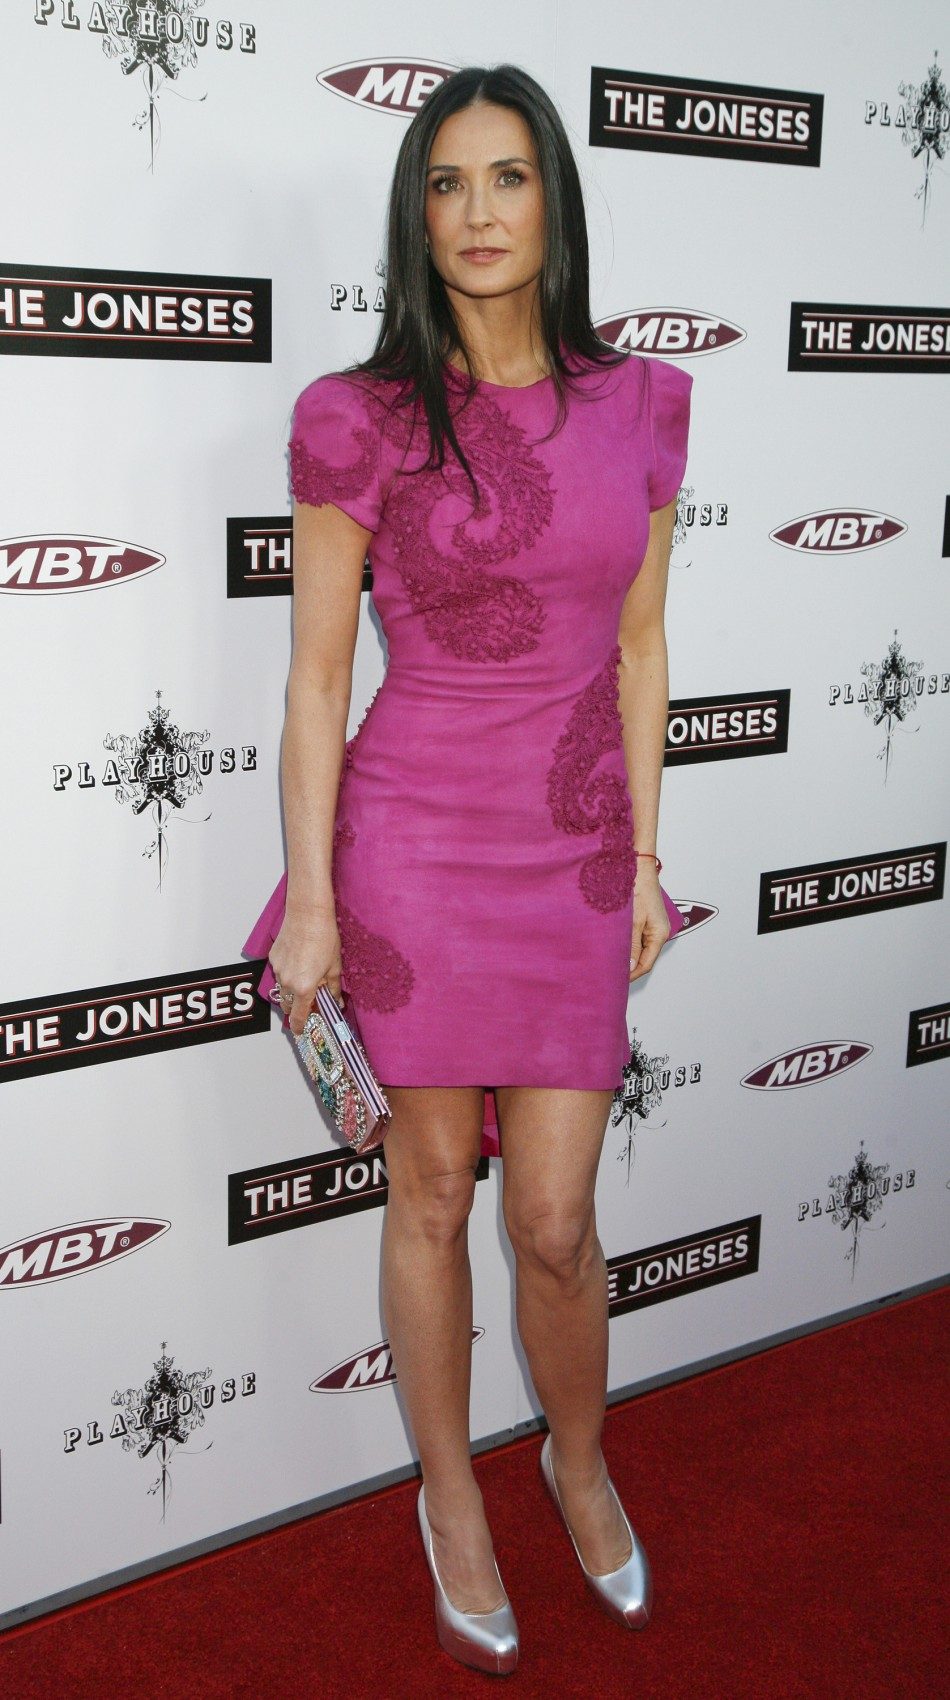 """Actress Demi Moore, cast member of the movie """"The Joneses"""", arrives for the film's premiere in Los Angeles"""